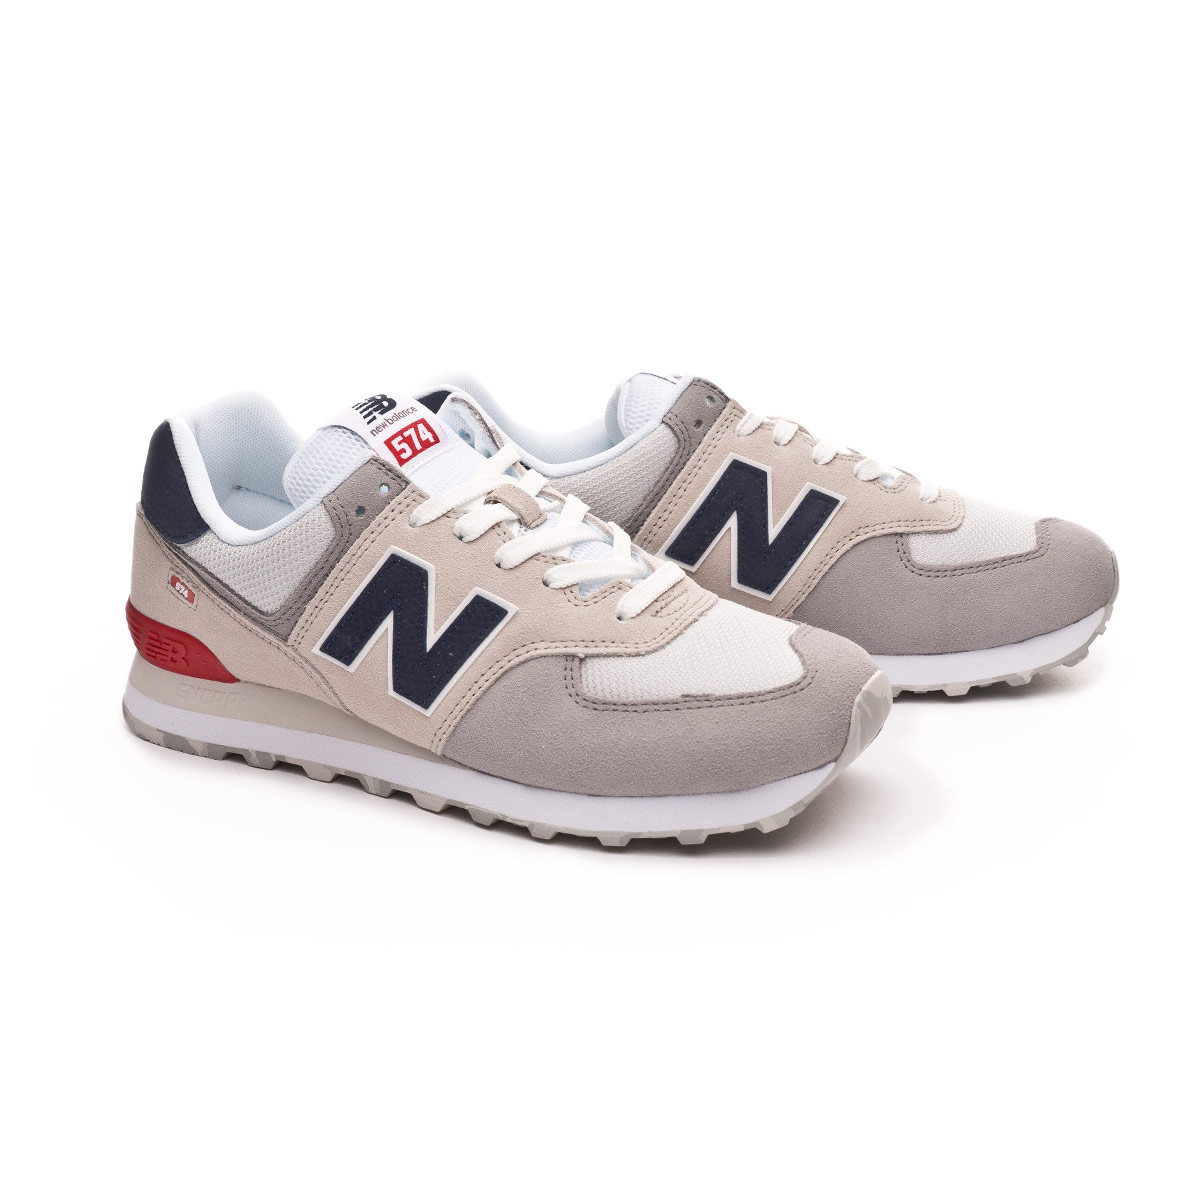 2a5096c1f44 Trainers New Balance 574 Nimbus cloud - Football store Fútbol Emotion